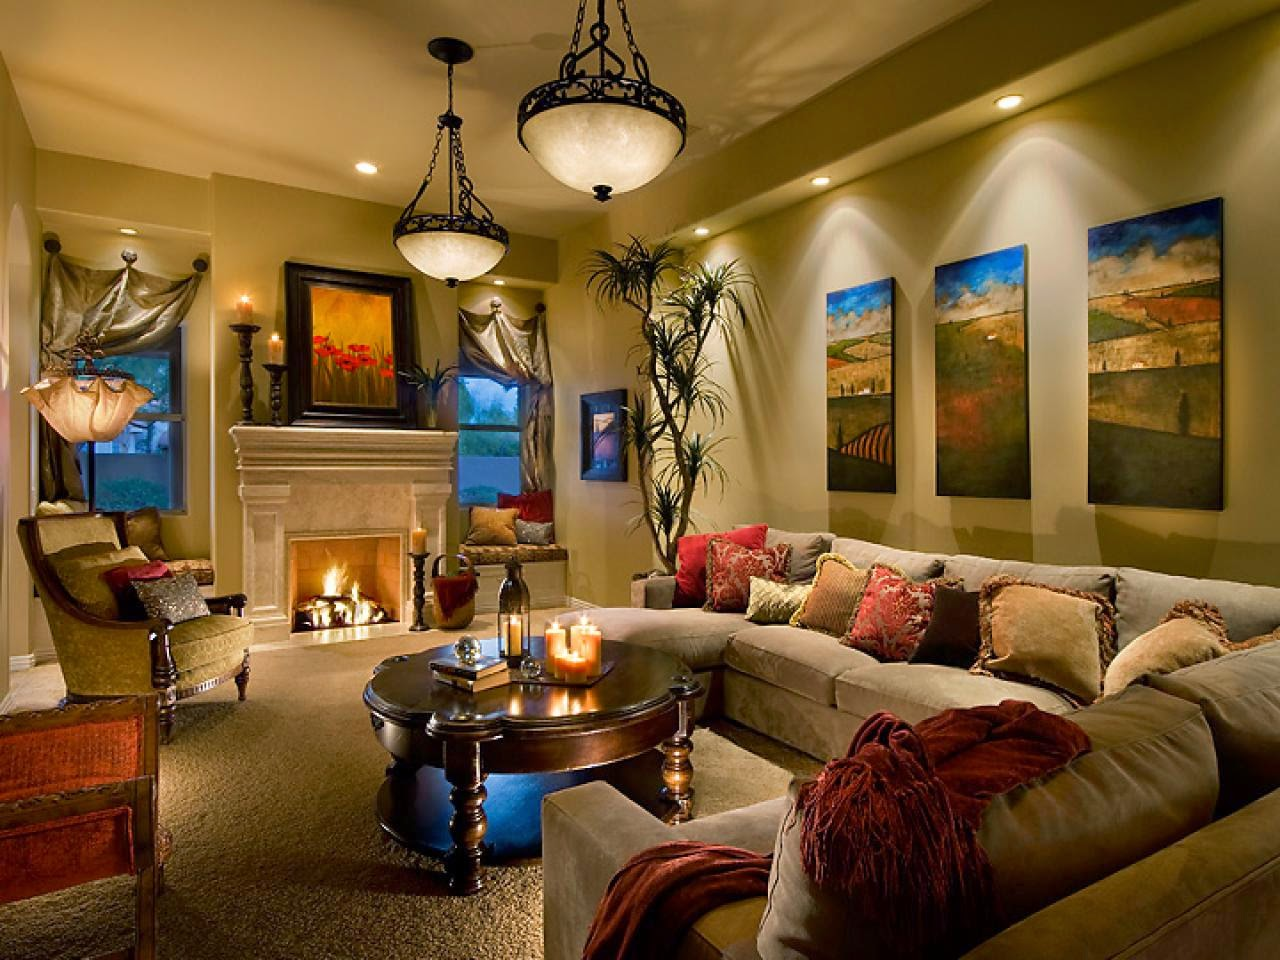 Living Room With Accent Down Light Pendant And Floor Lamp